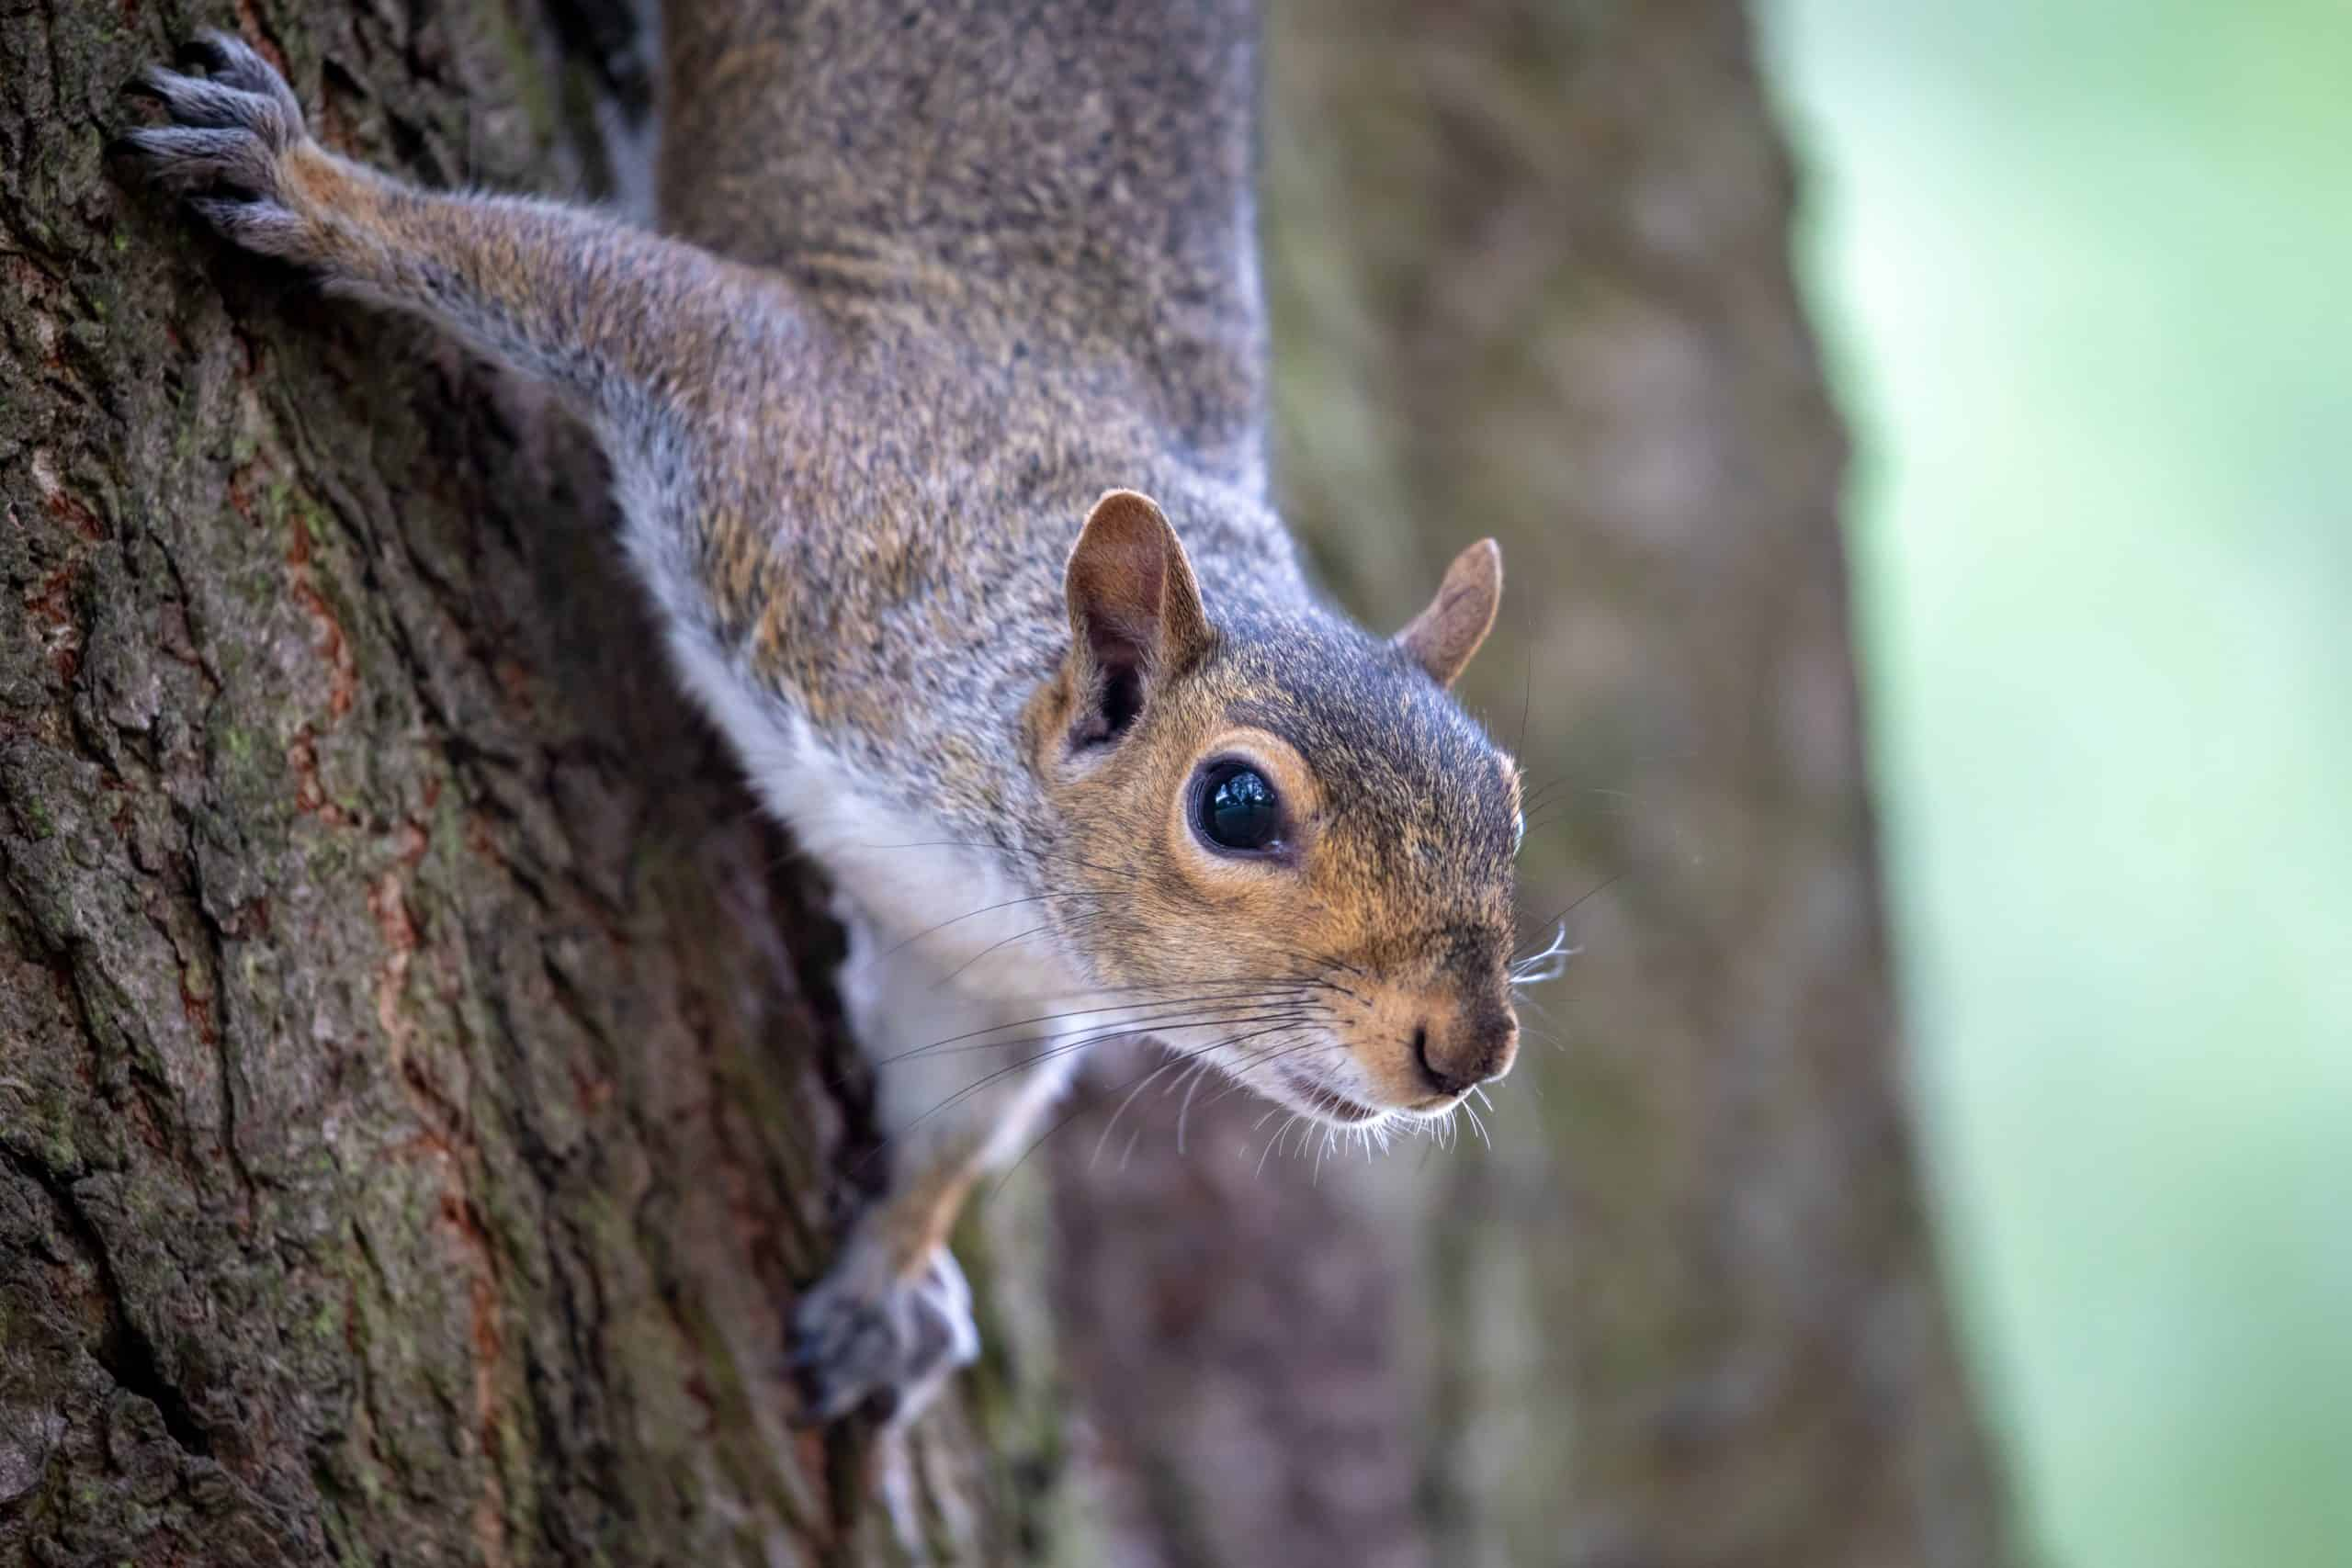 Gray squirrel on a tree. Dogs are great at scaring away wildlife and can help keep small nuisance animals like squirrels, rabbits, and rats away from your home.